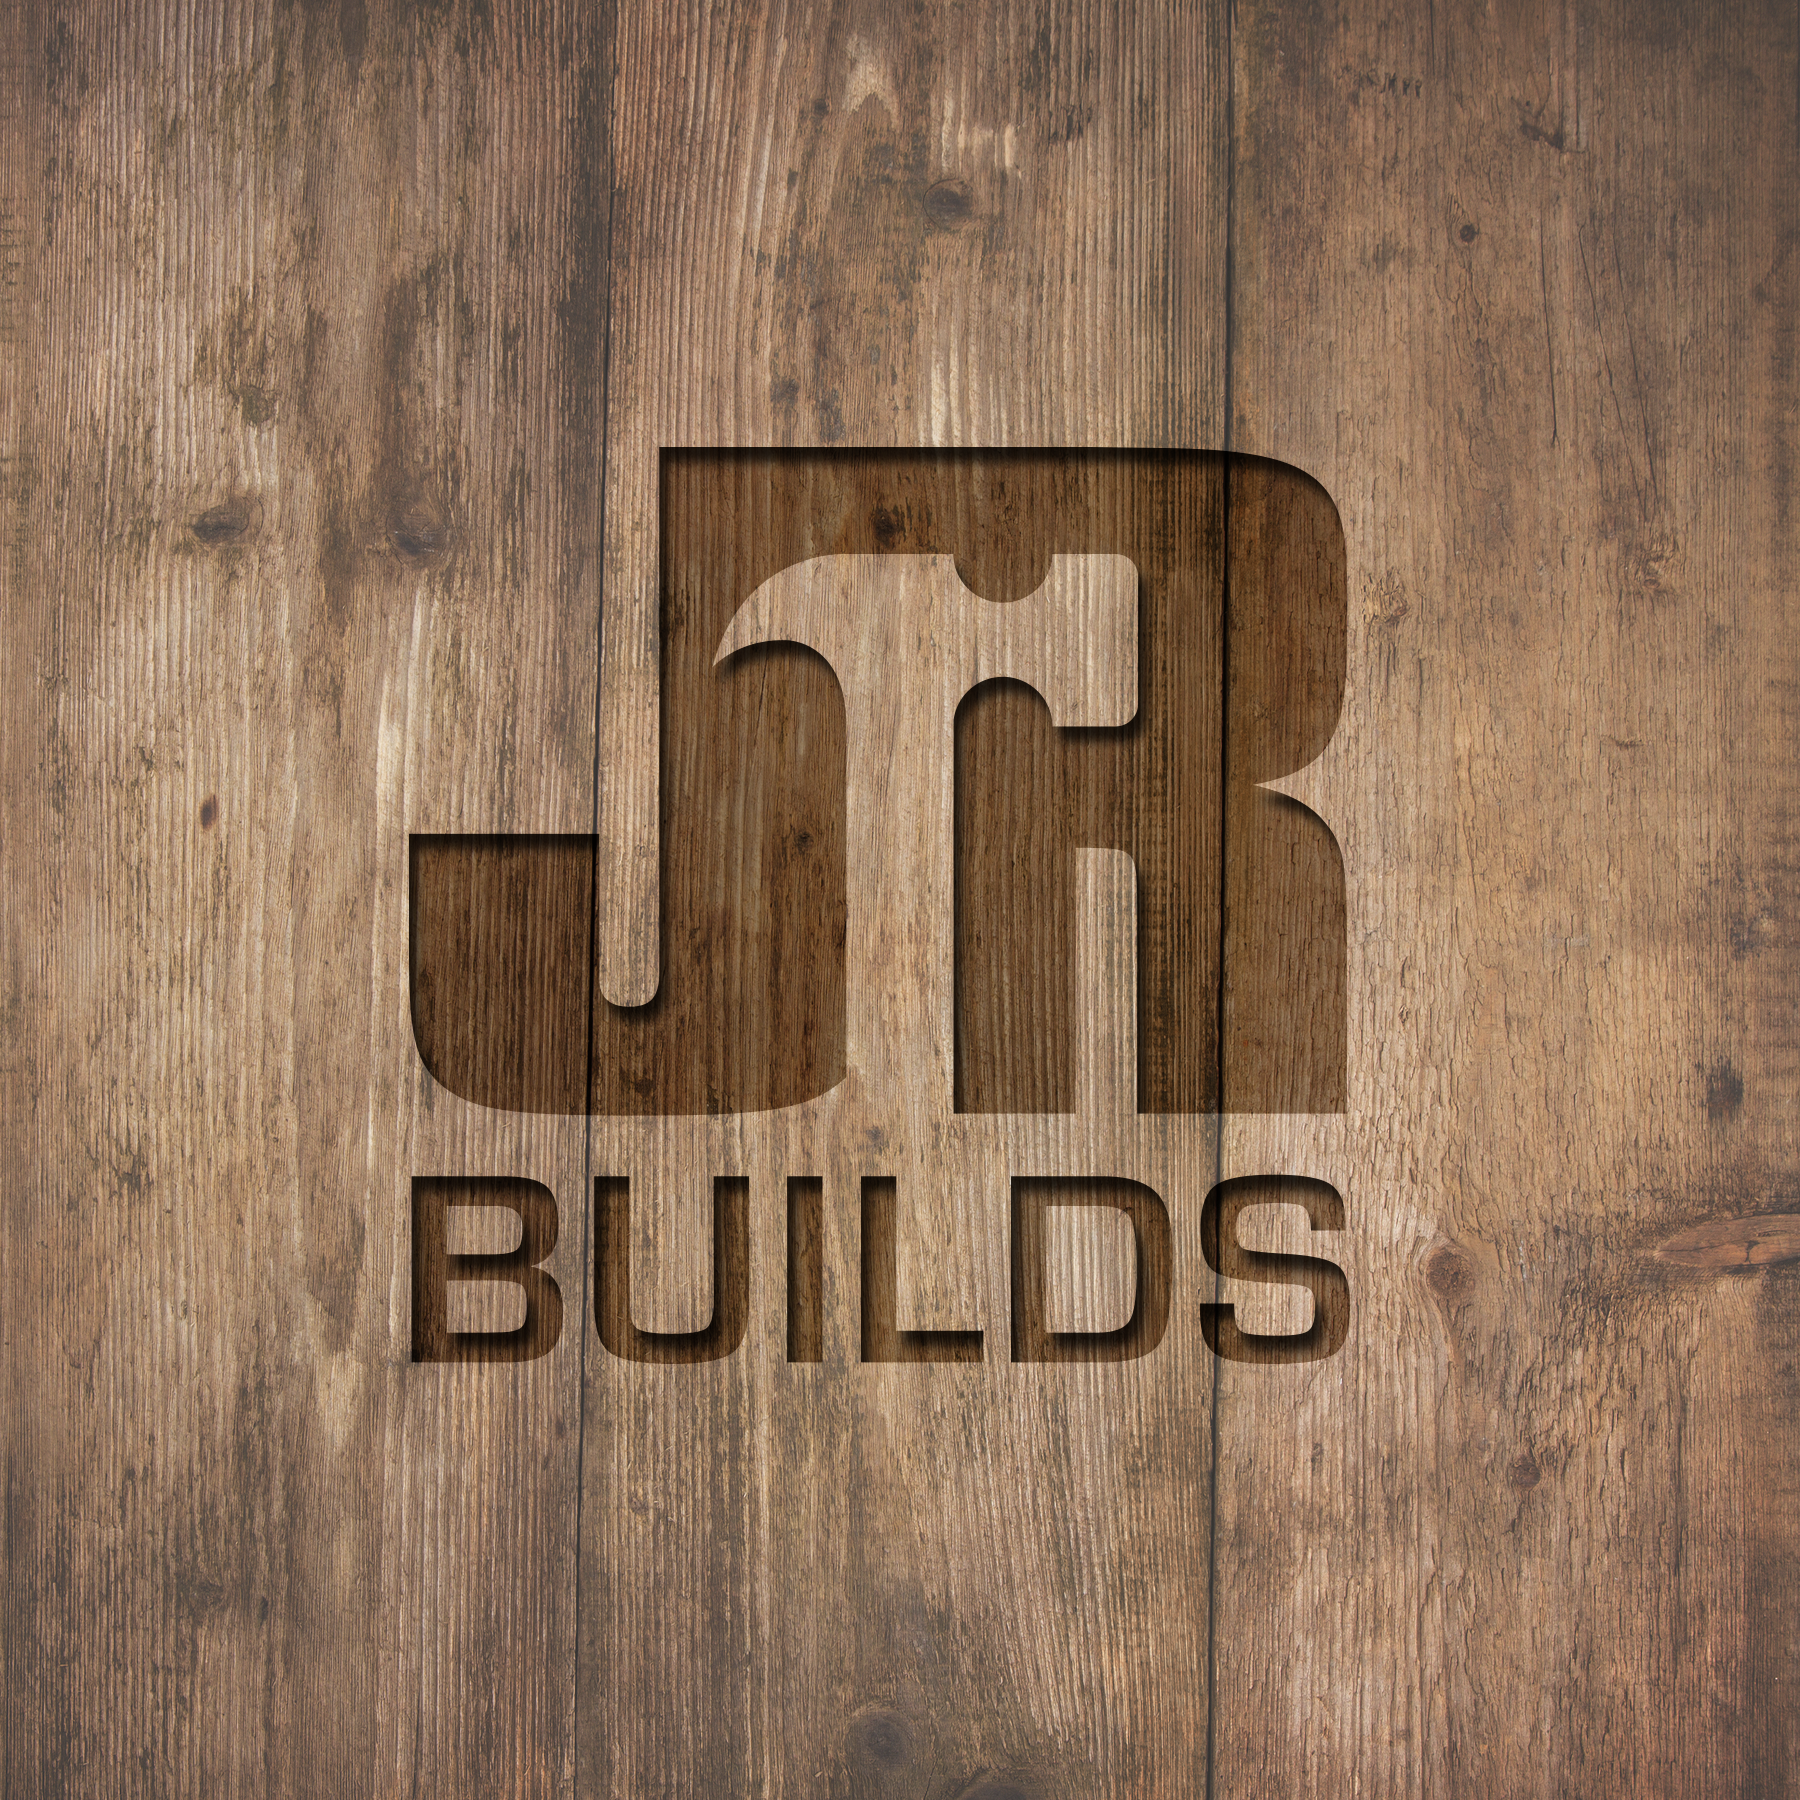 JR Builds